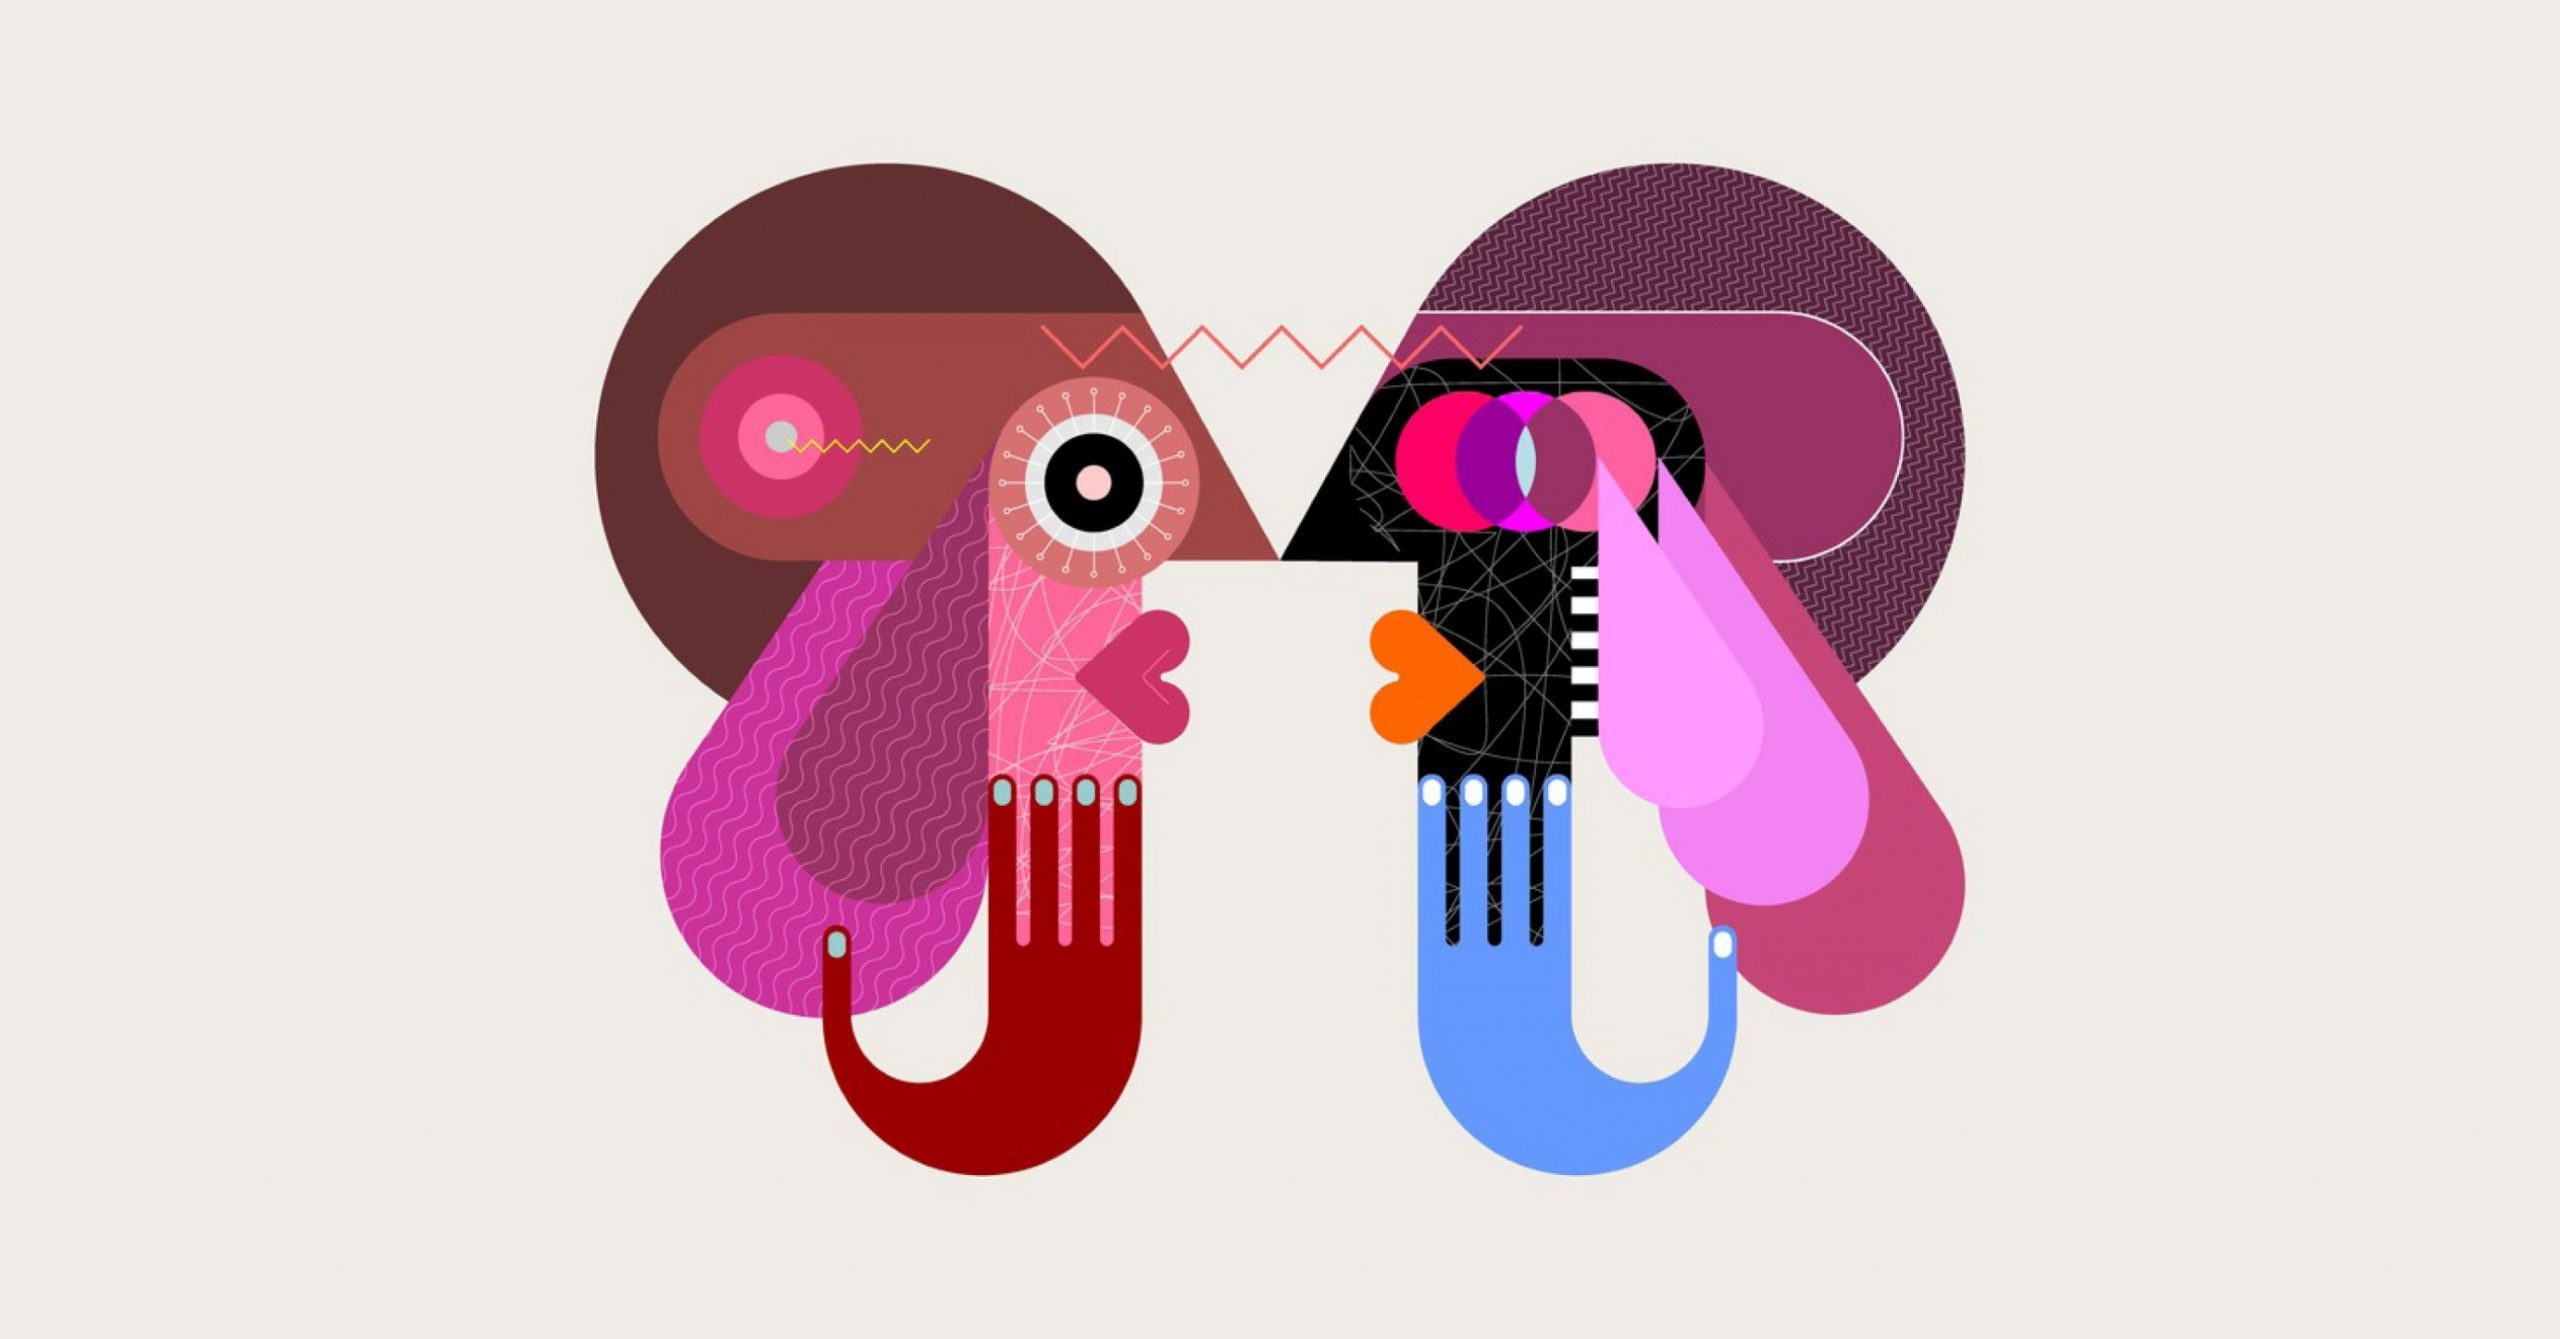 cubist style illustration of two people talking to each other